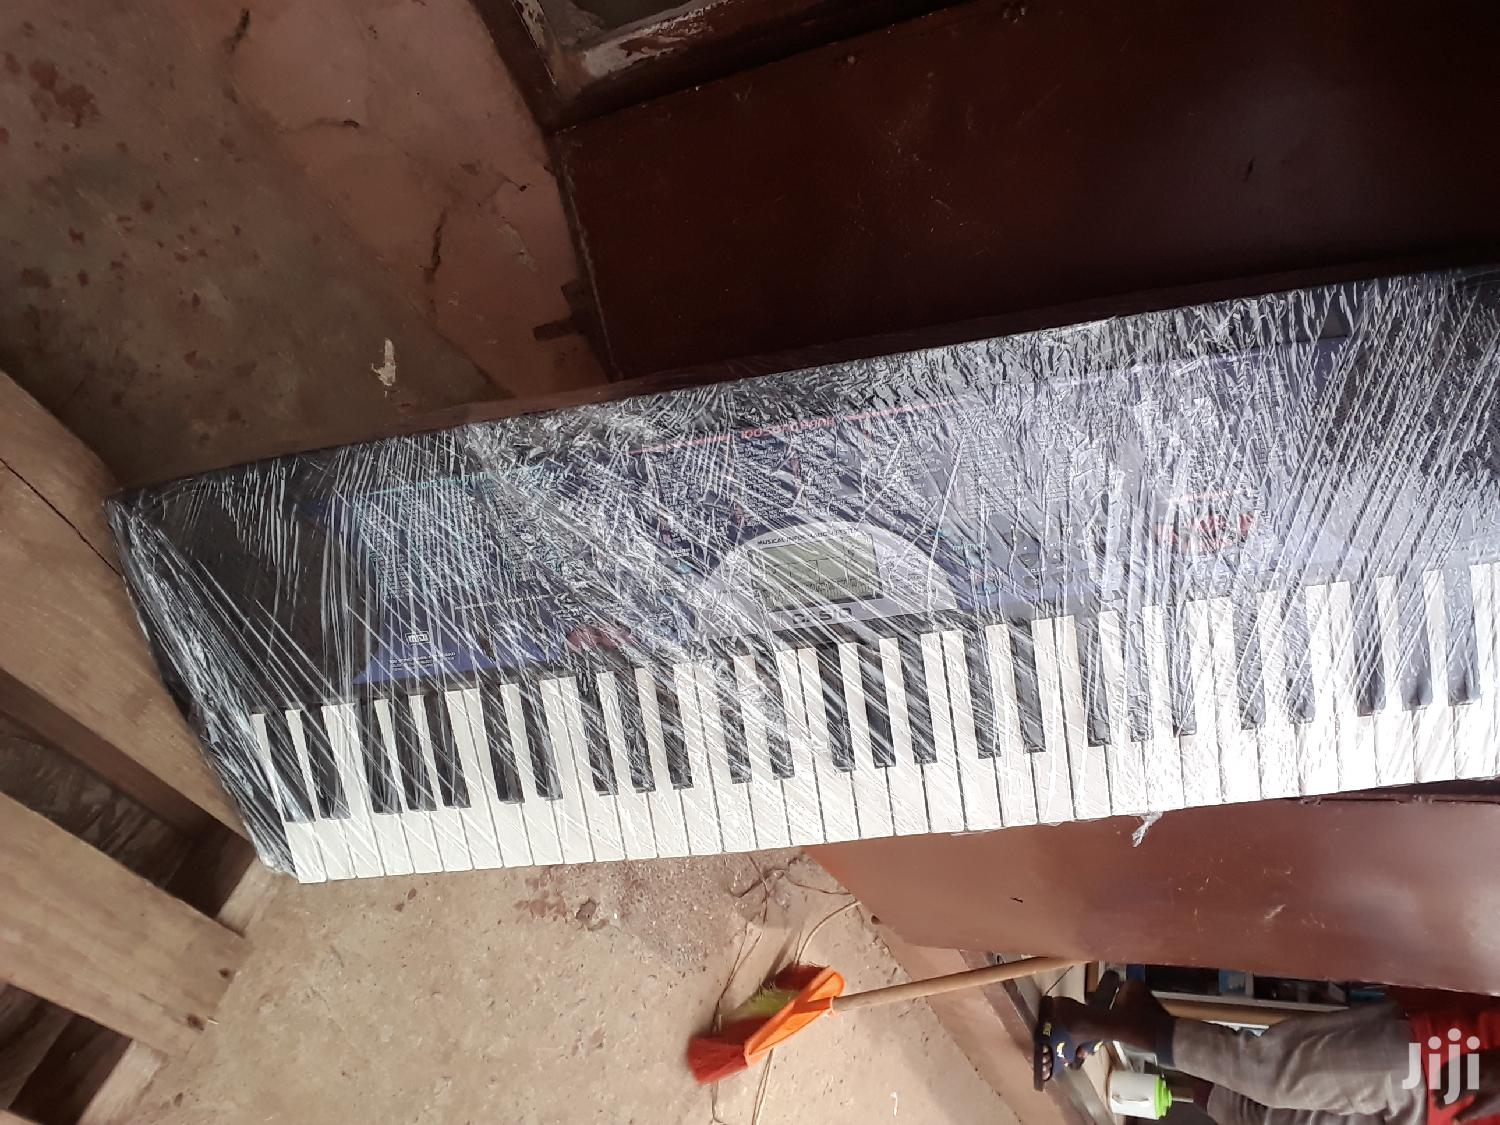 Practice Keyboards | Musical Instruments & Gear for sale in Accra Metropolitan, Greater Accra, Ghana